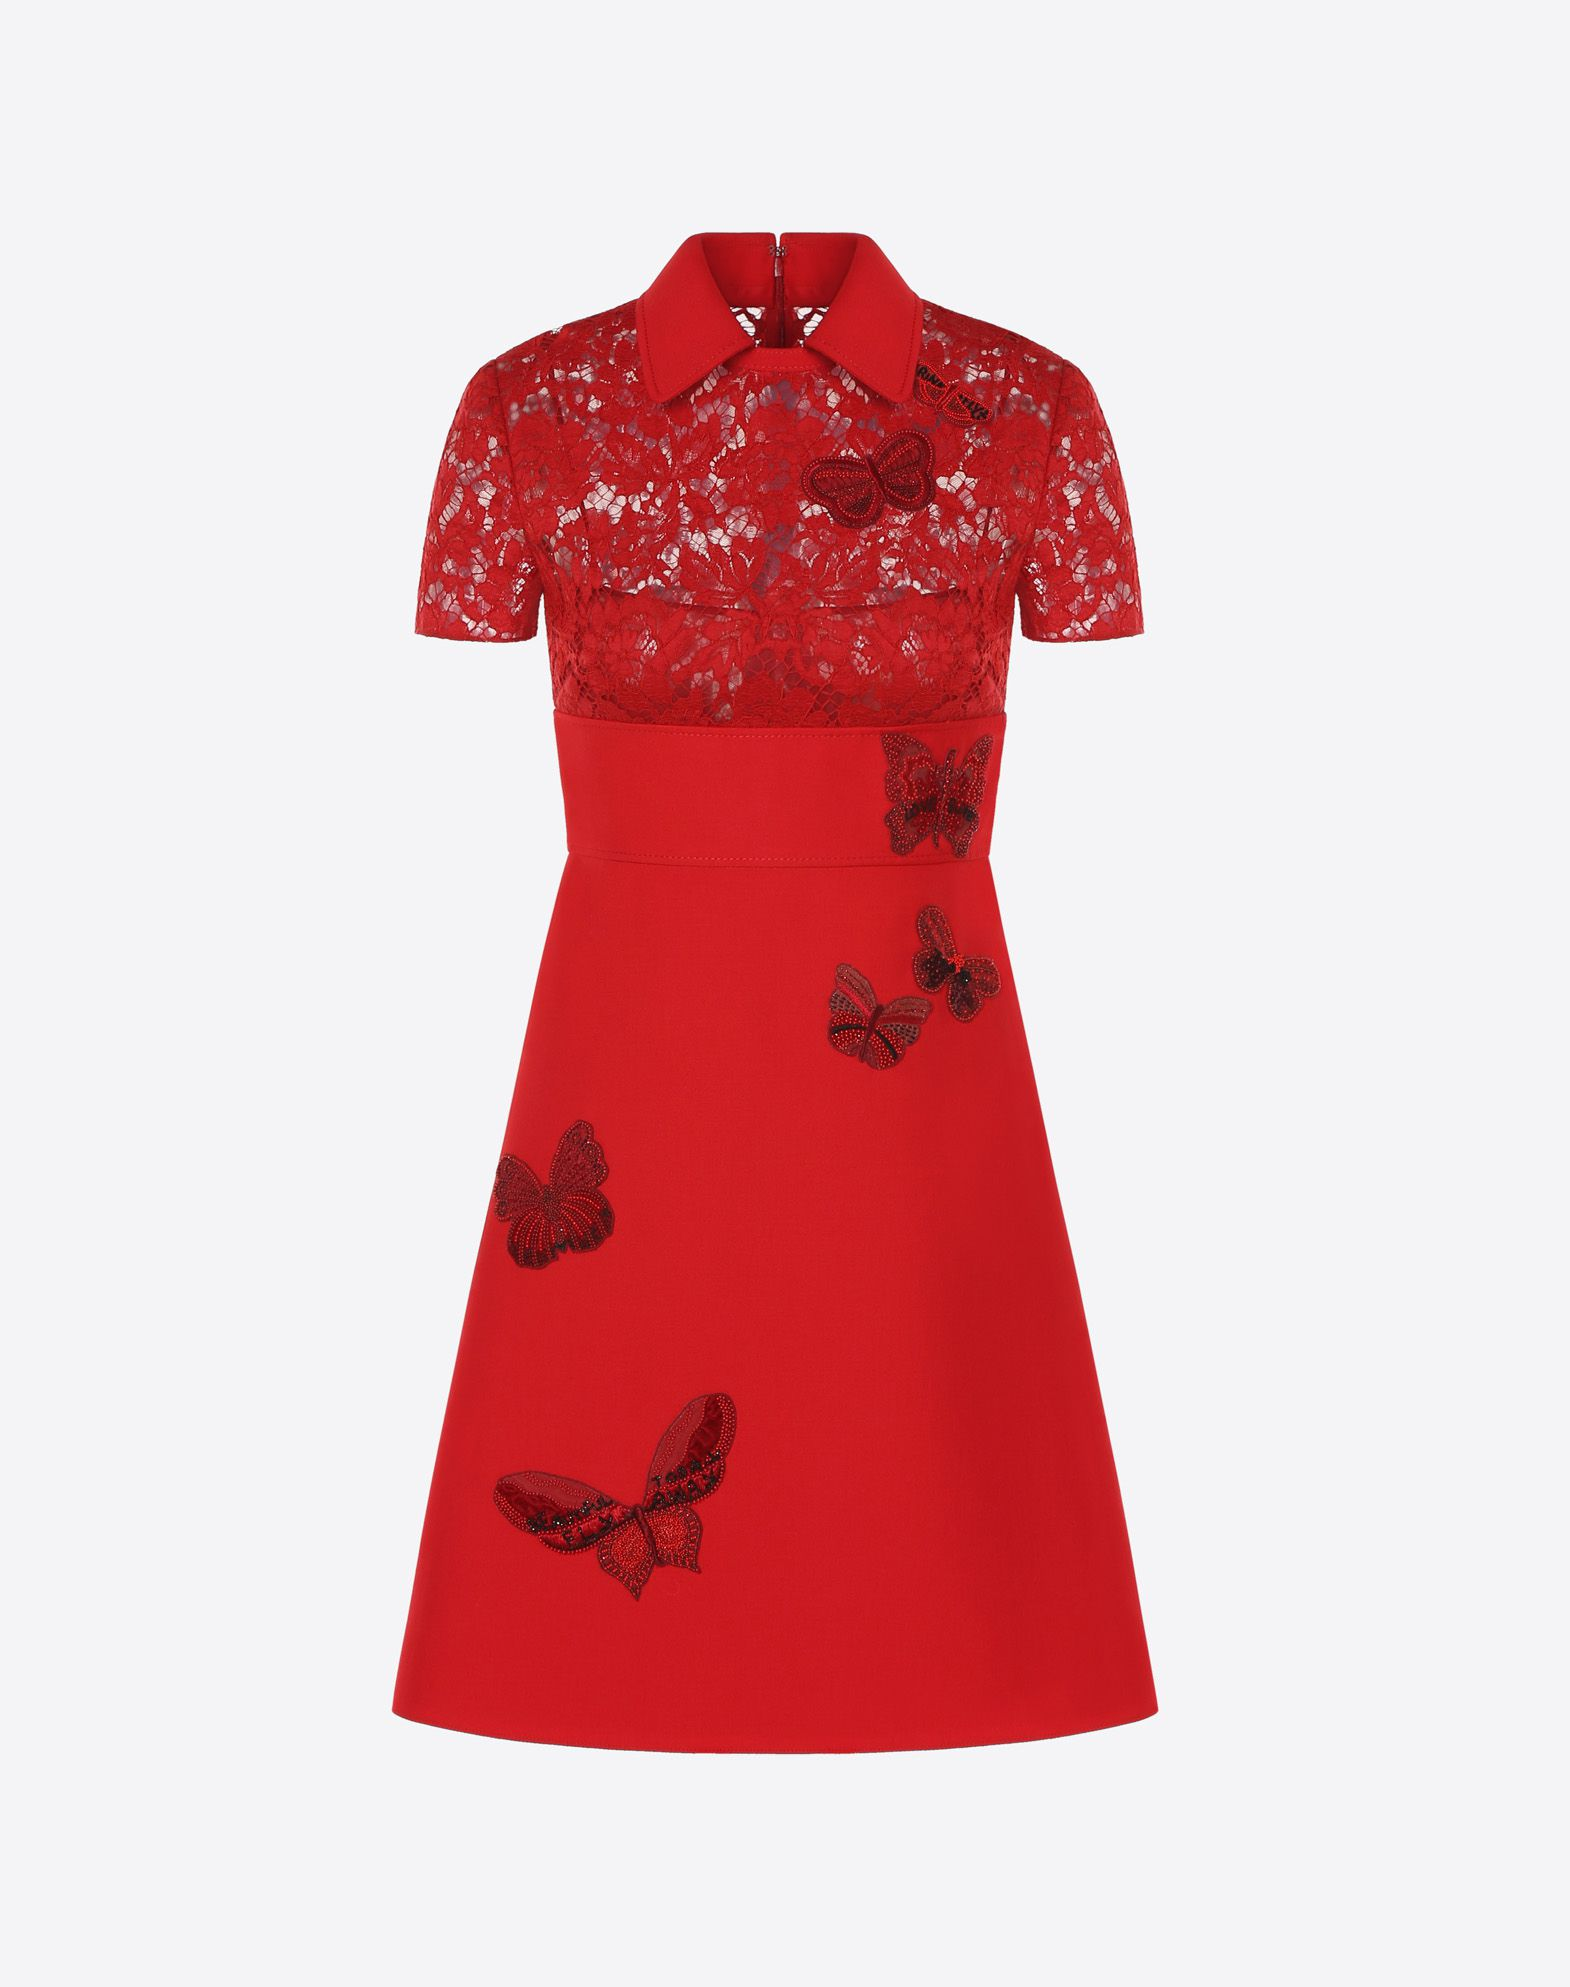 VALENTINO Solid colour Peter Pan collar Zip Crepe Lace Beaded Contrasting applications Fully lined  34820531sl